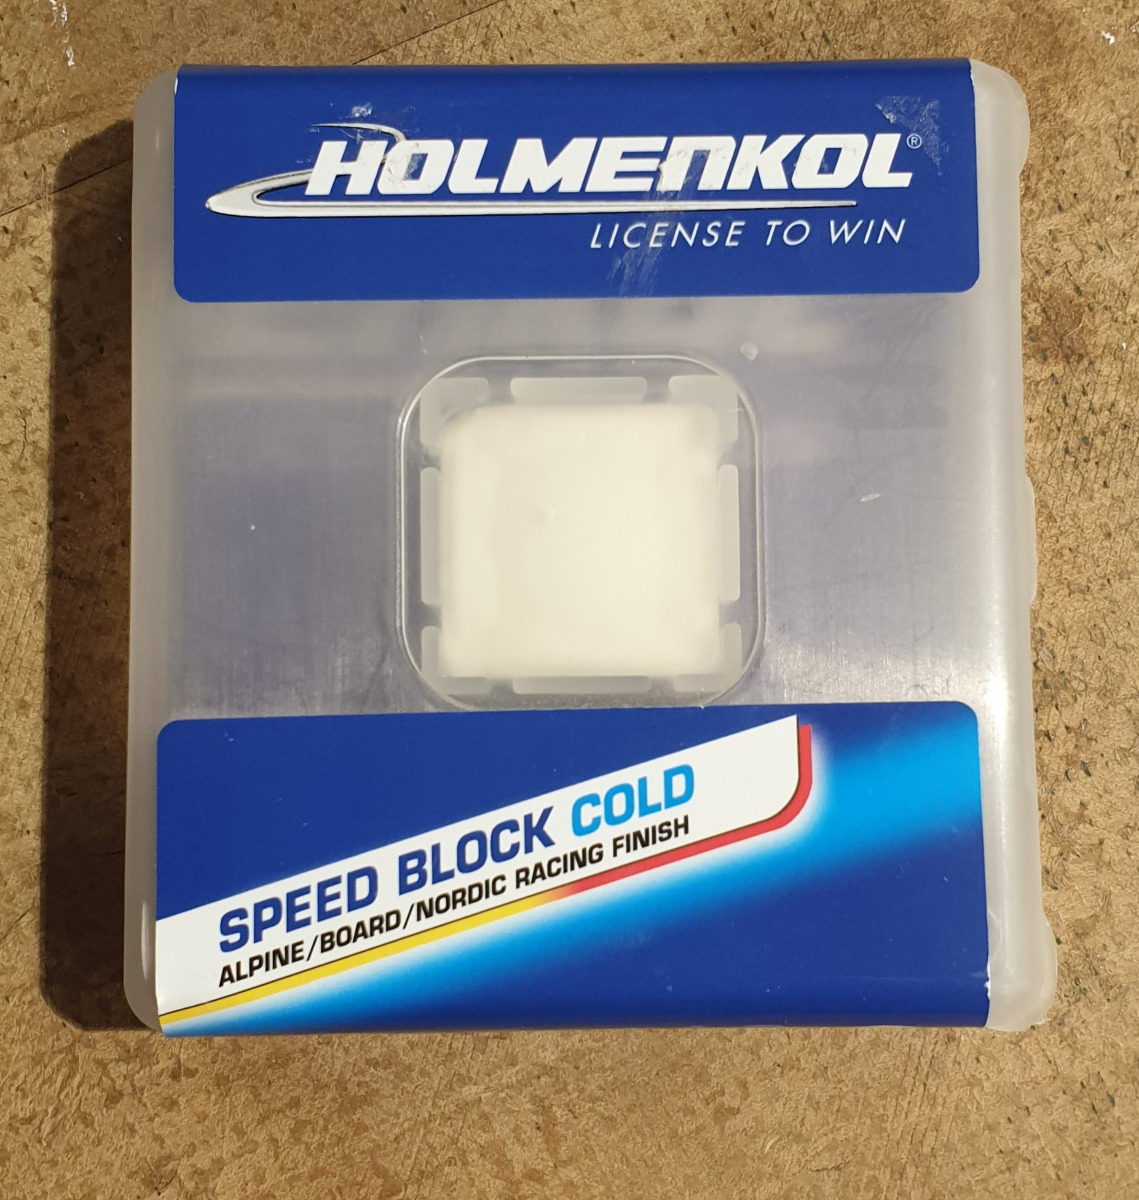 Produktbild Holmenkol Speed Block Cold